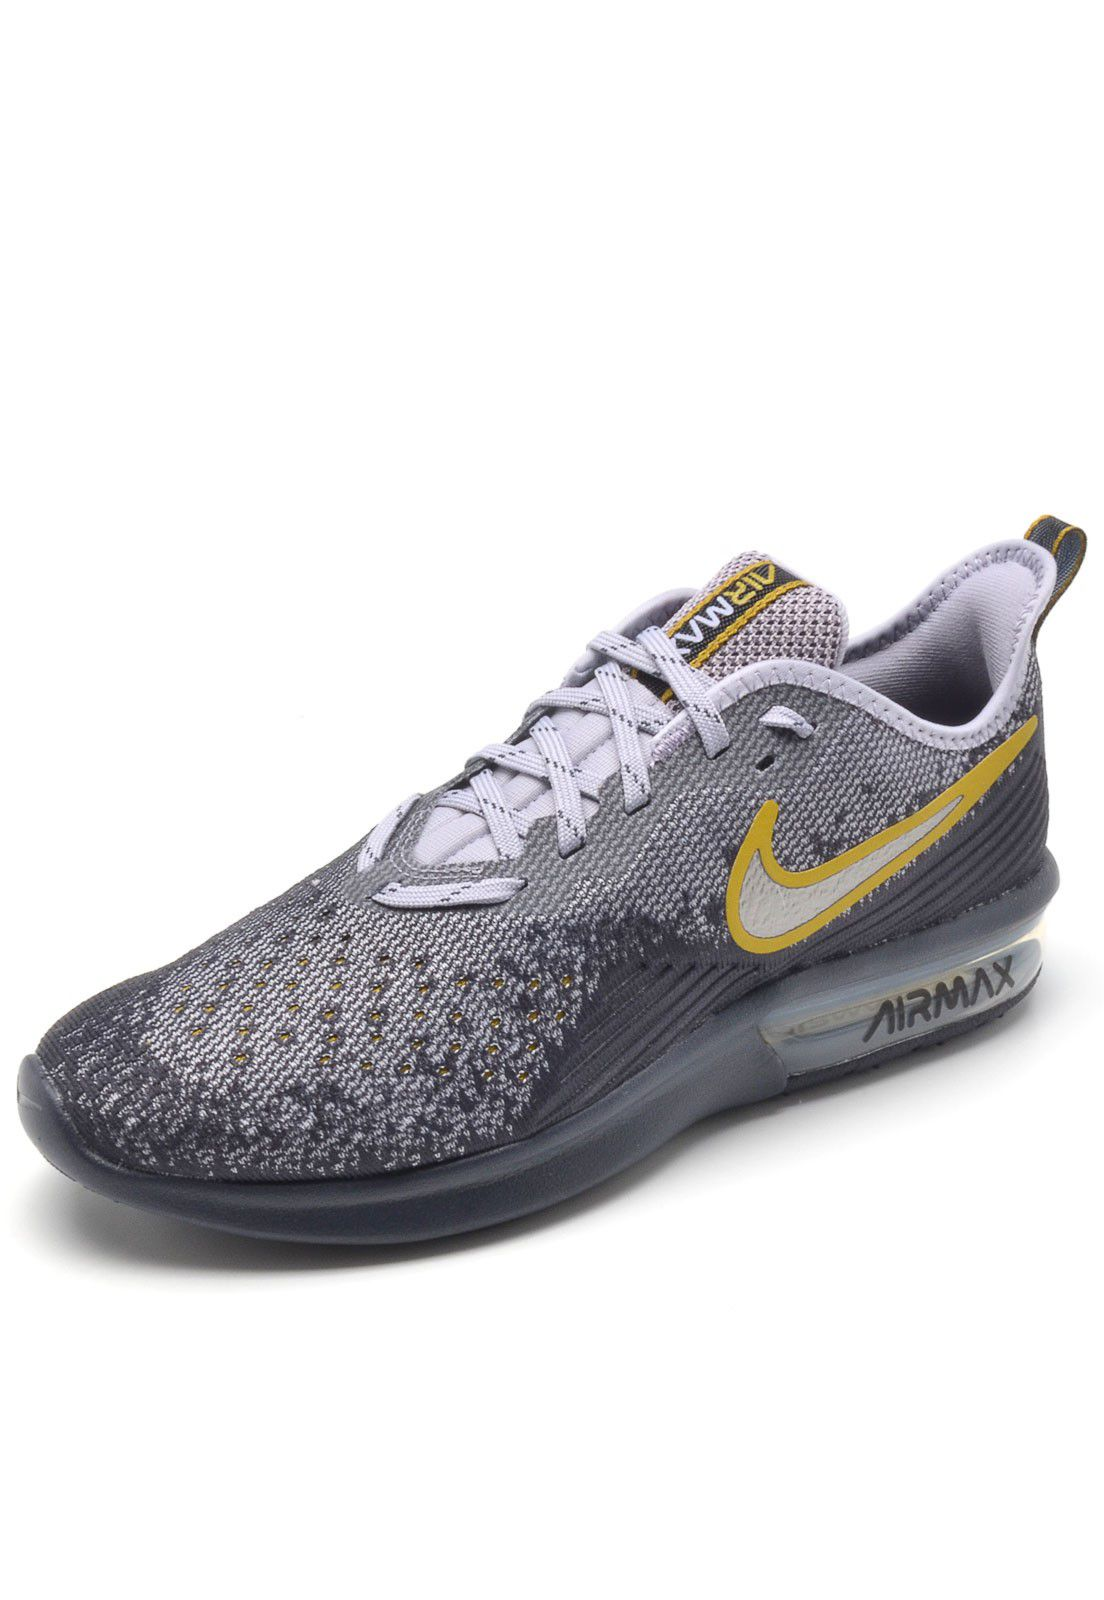 Tênis Nike Air Max Sequent 4 Masculino